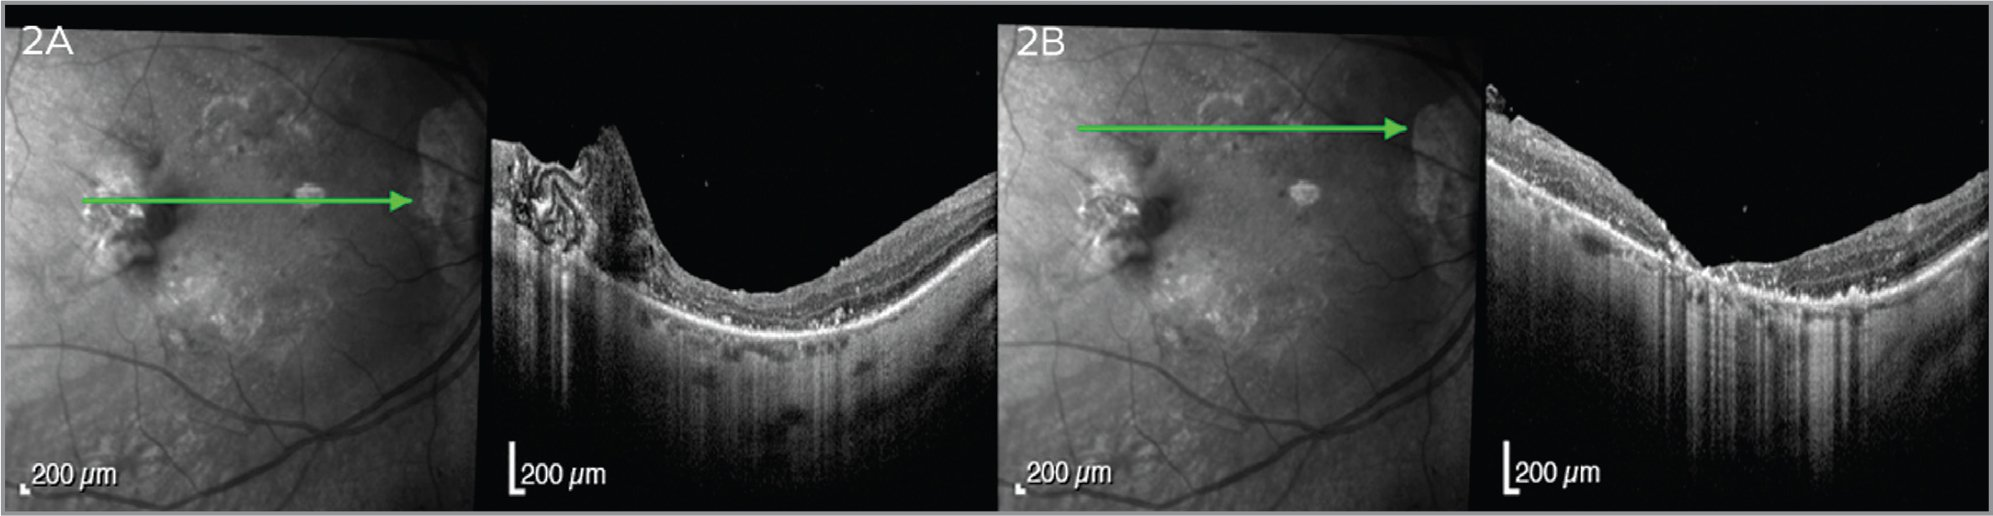 (A) Two months after autologous anterior lens capsule transplantation, the holes are closed and retina reattached, the largest hole is closed with a residual fragment of the capsule. (B) The superior holes are closed without remnants of the lens capsule flap.